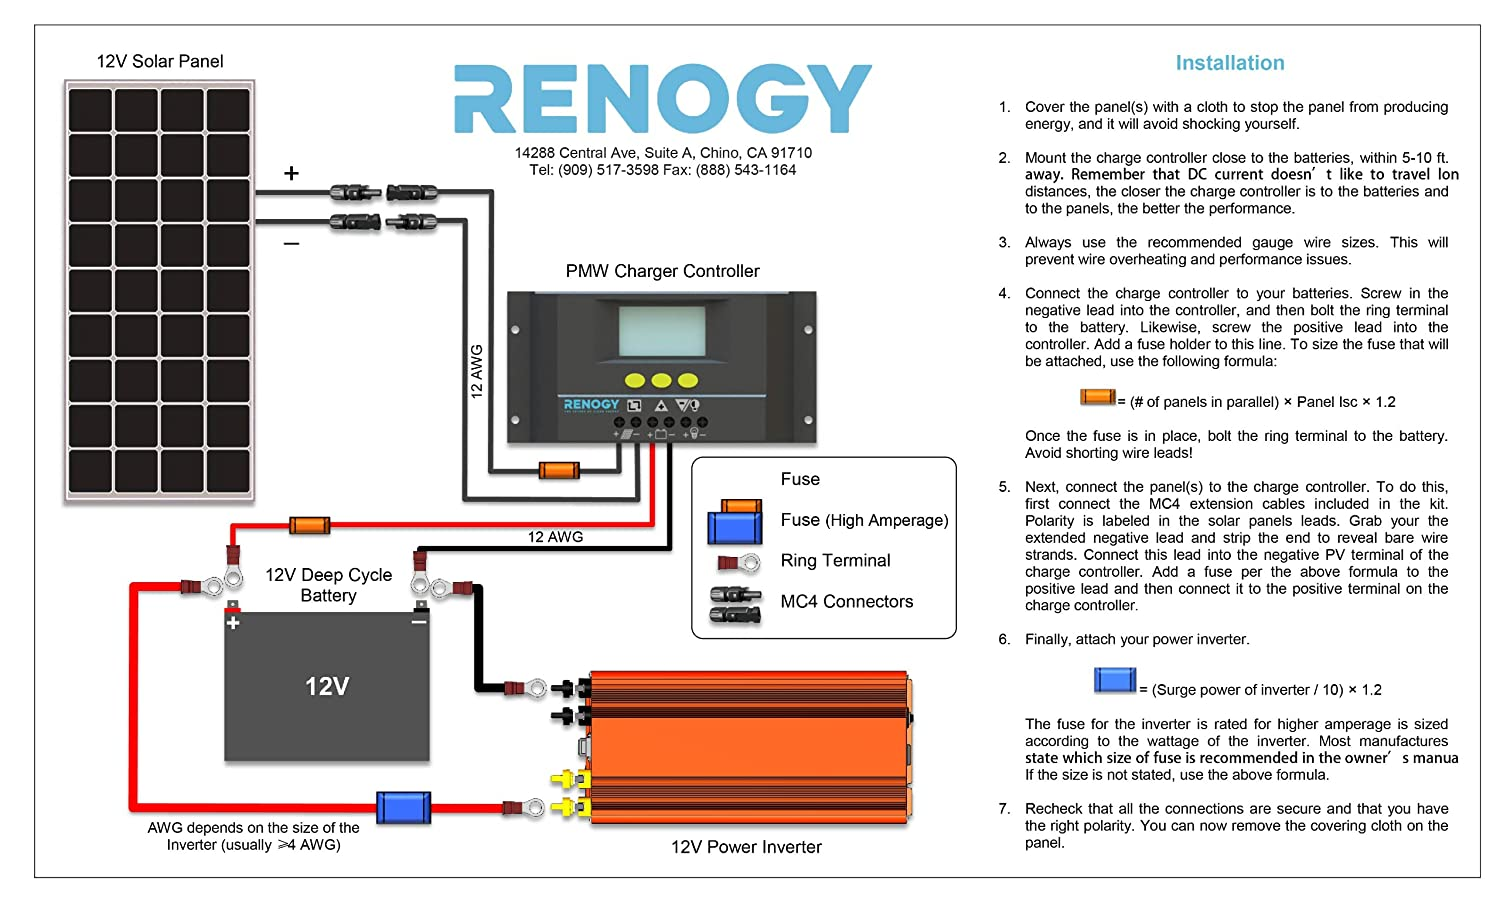 Amazon.com : Renogy 50W 12V Monocrystalline Solar Panel High ... on 12 volt battery bank, 12v parallel wiring diagram, 4 6 volt battery hook up diagram, battery connection diagram, battery system diagram, camper wiring harness diagram, multi battery isolator diagram, 12 volt battery connections, dual alternator wiring diagram, arco alternator wiring diagram, camper trailer electrical connection diagram, 12 volt battery parallel wiring, 12 volt trailer battery wiring, 4 6 volt batteries in series diagram,